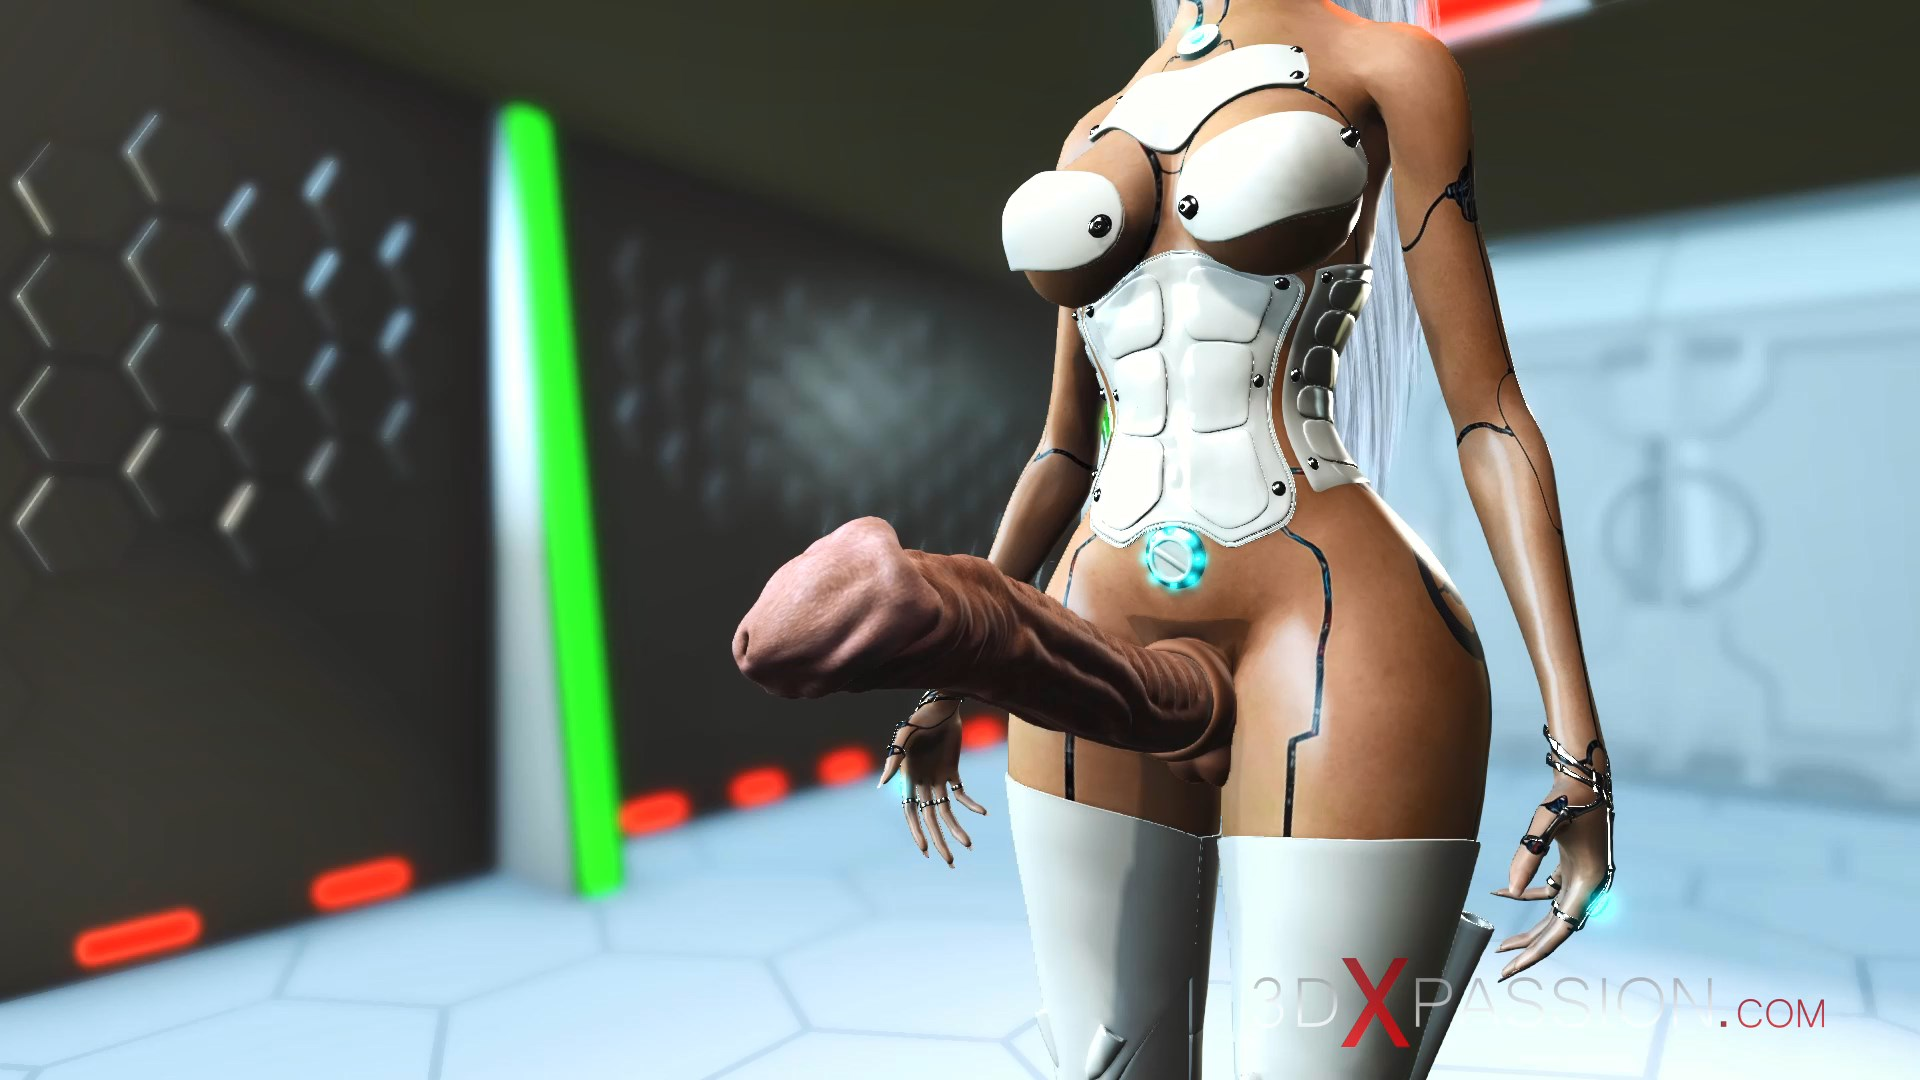 hot 3d sci-fi android dickgirl space station